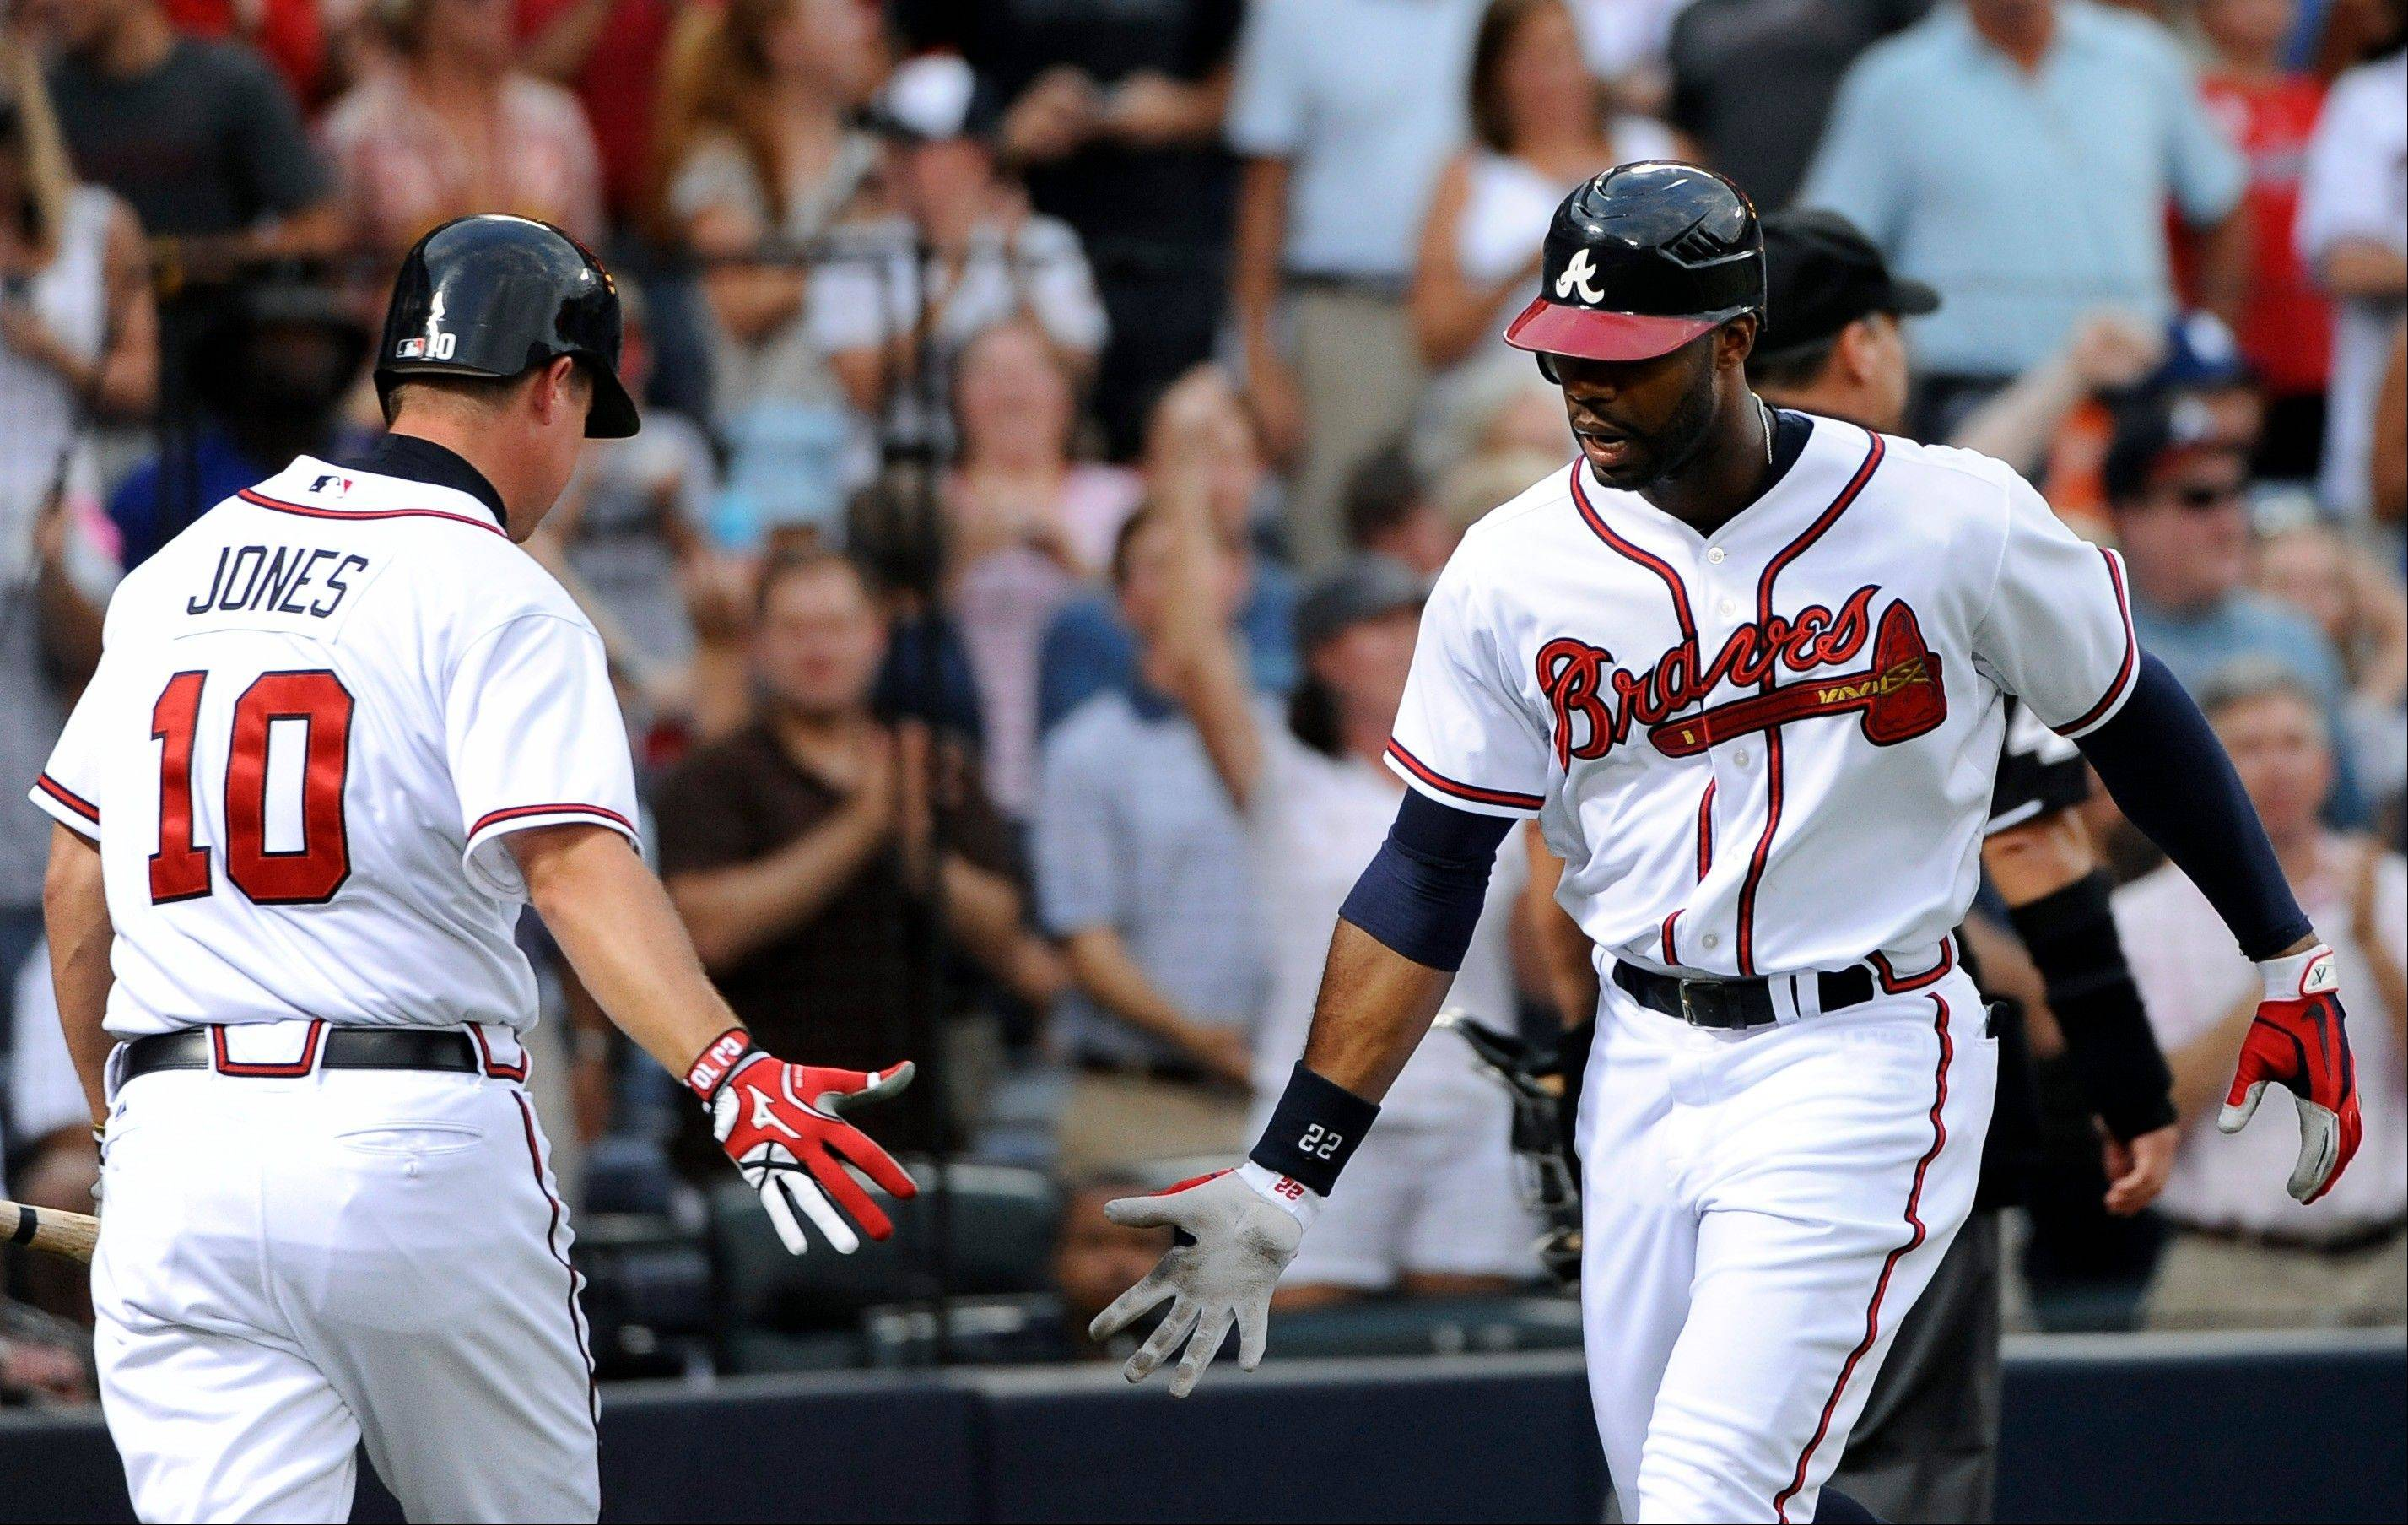 The Braves� Chipper Jones congratulates Jason Heyward on his solo home run against the Miami Marlins during the third inning Monday in Atlanta.